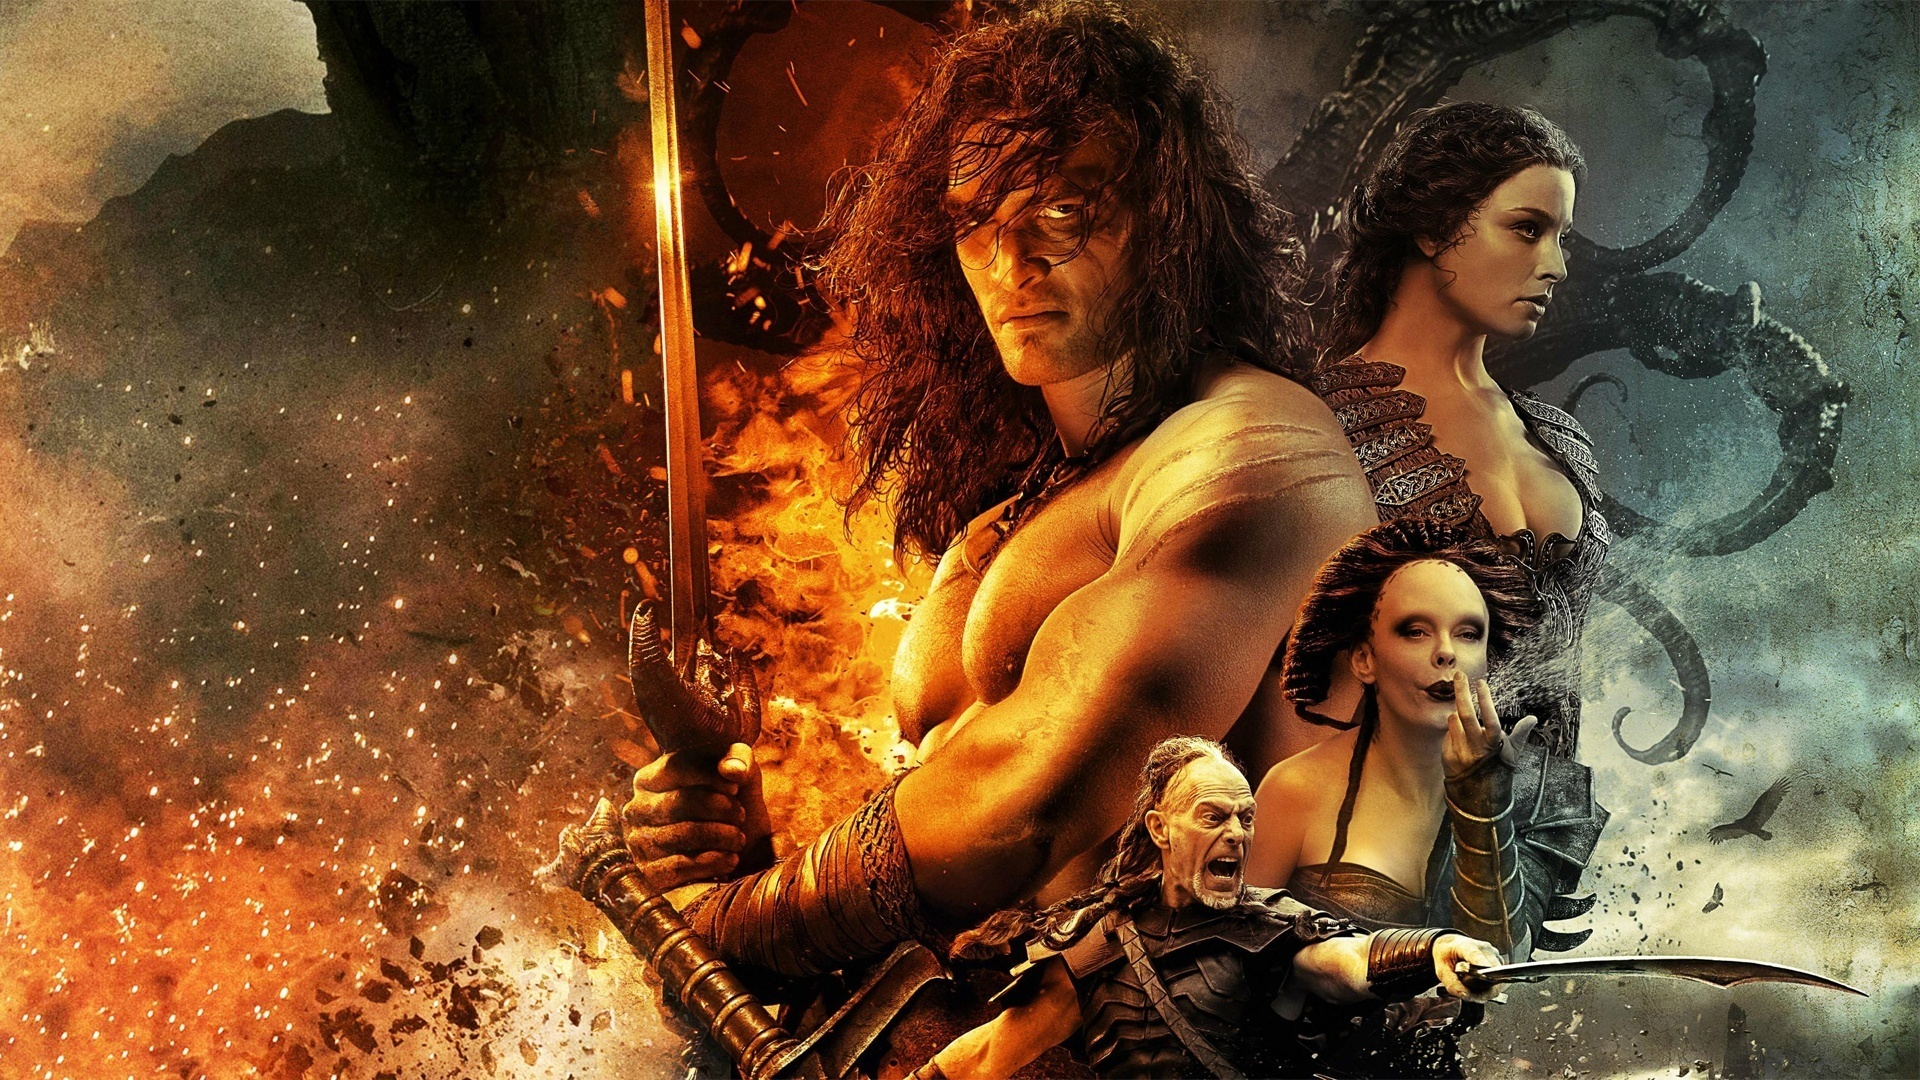 Movie   Conan The Barbarian 2011 Conan The Barbarian Wallpaper 1920x1080